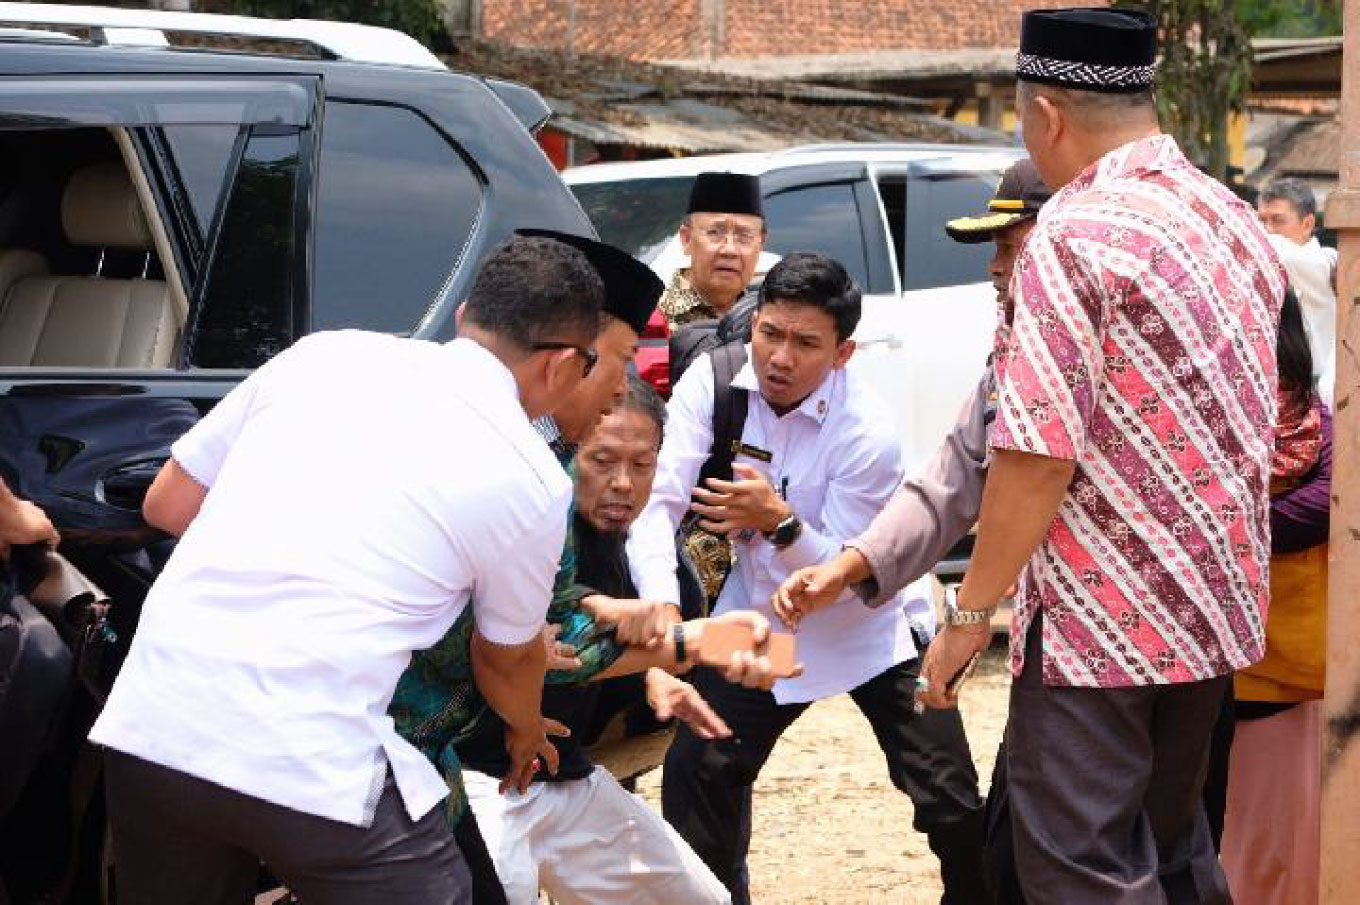 Jokowi orders crackdown on 'terror network' behind Wiranto attack